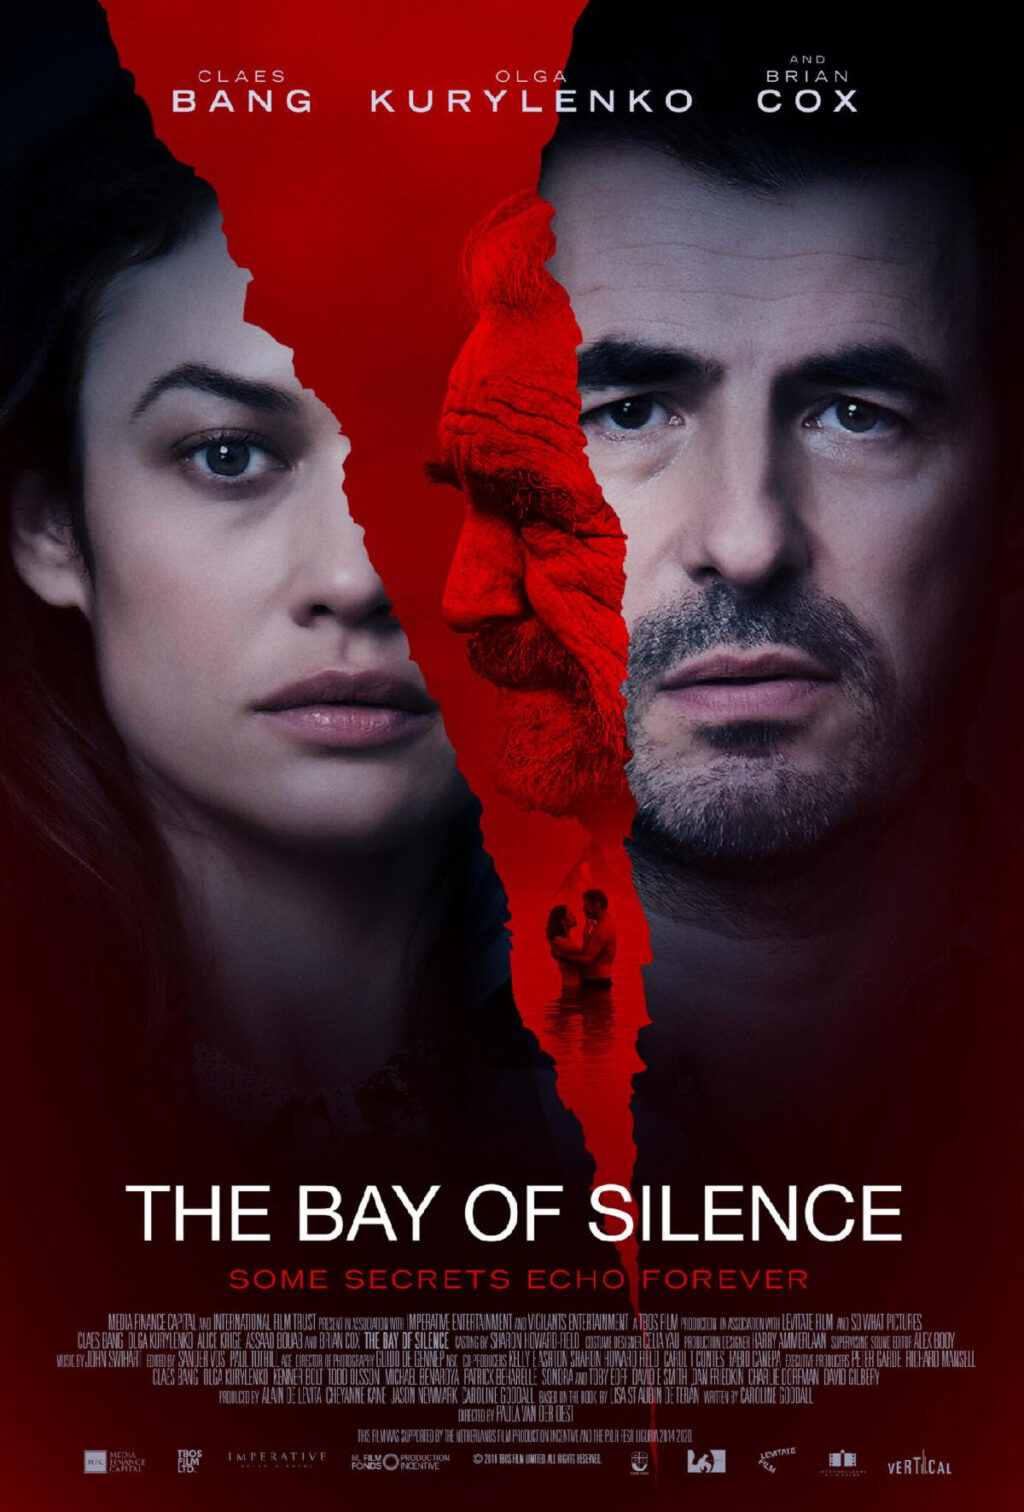 The Bay of Silence Poster 1024x1512 - Trailer: Hitchcockian Thrills Meet Psychological Horror in THE BAY OF SILENCE